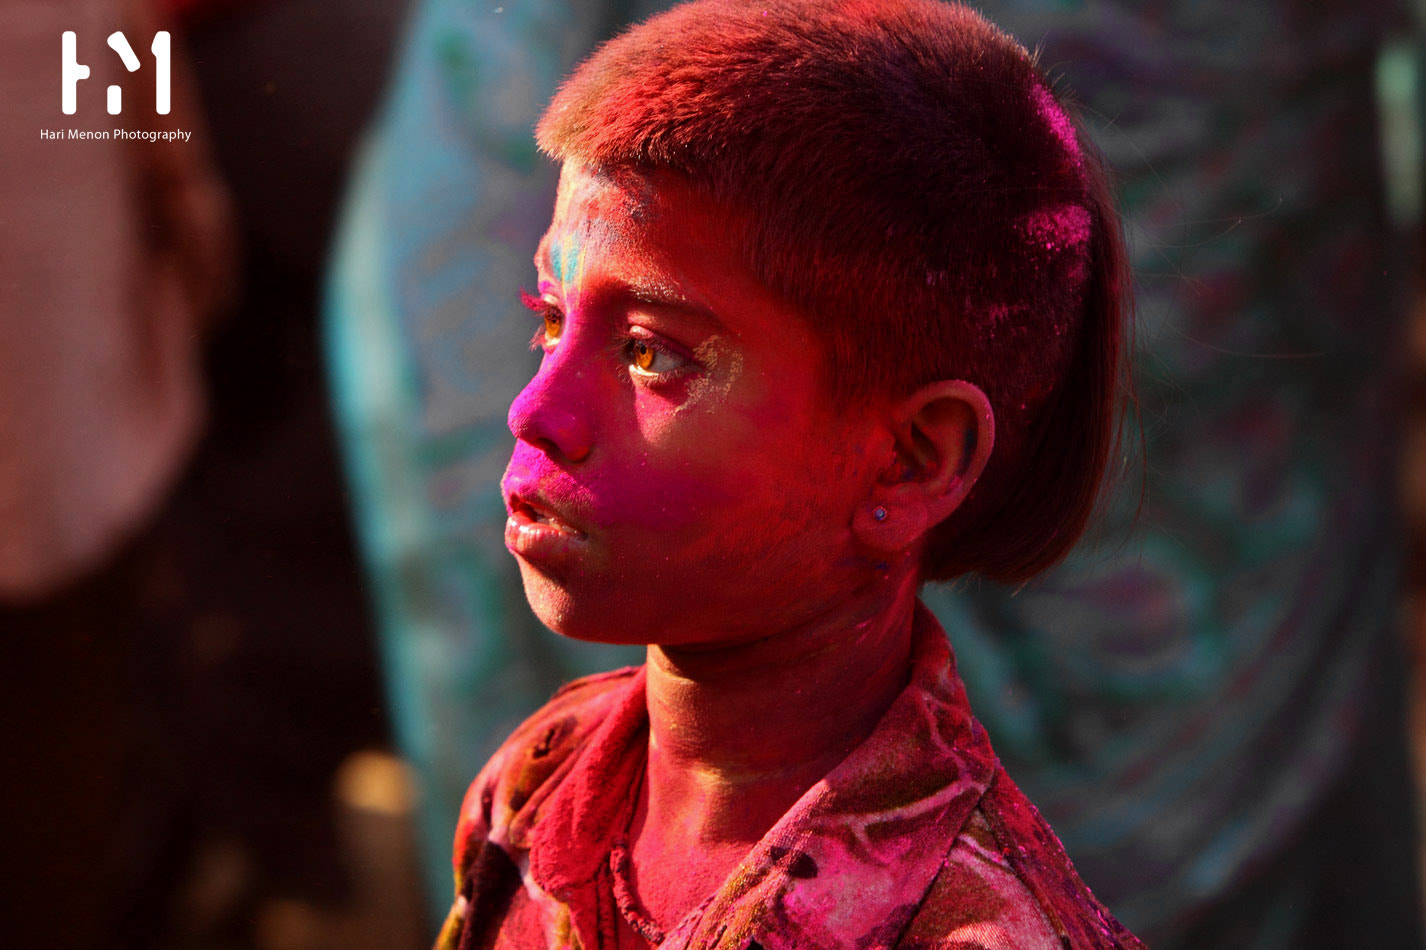 Photograph Colourful eyes  by Hari Menon on 500px